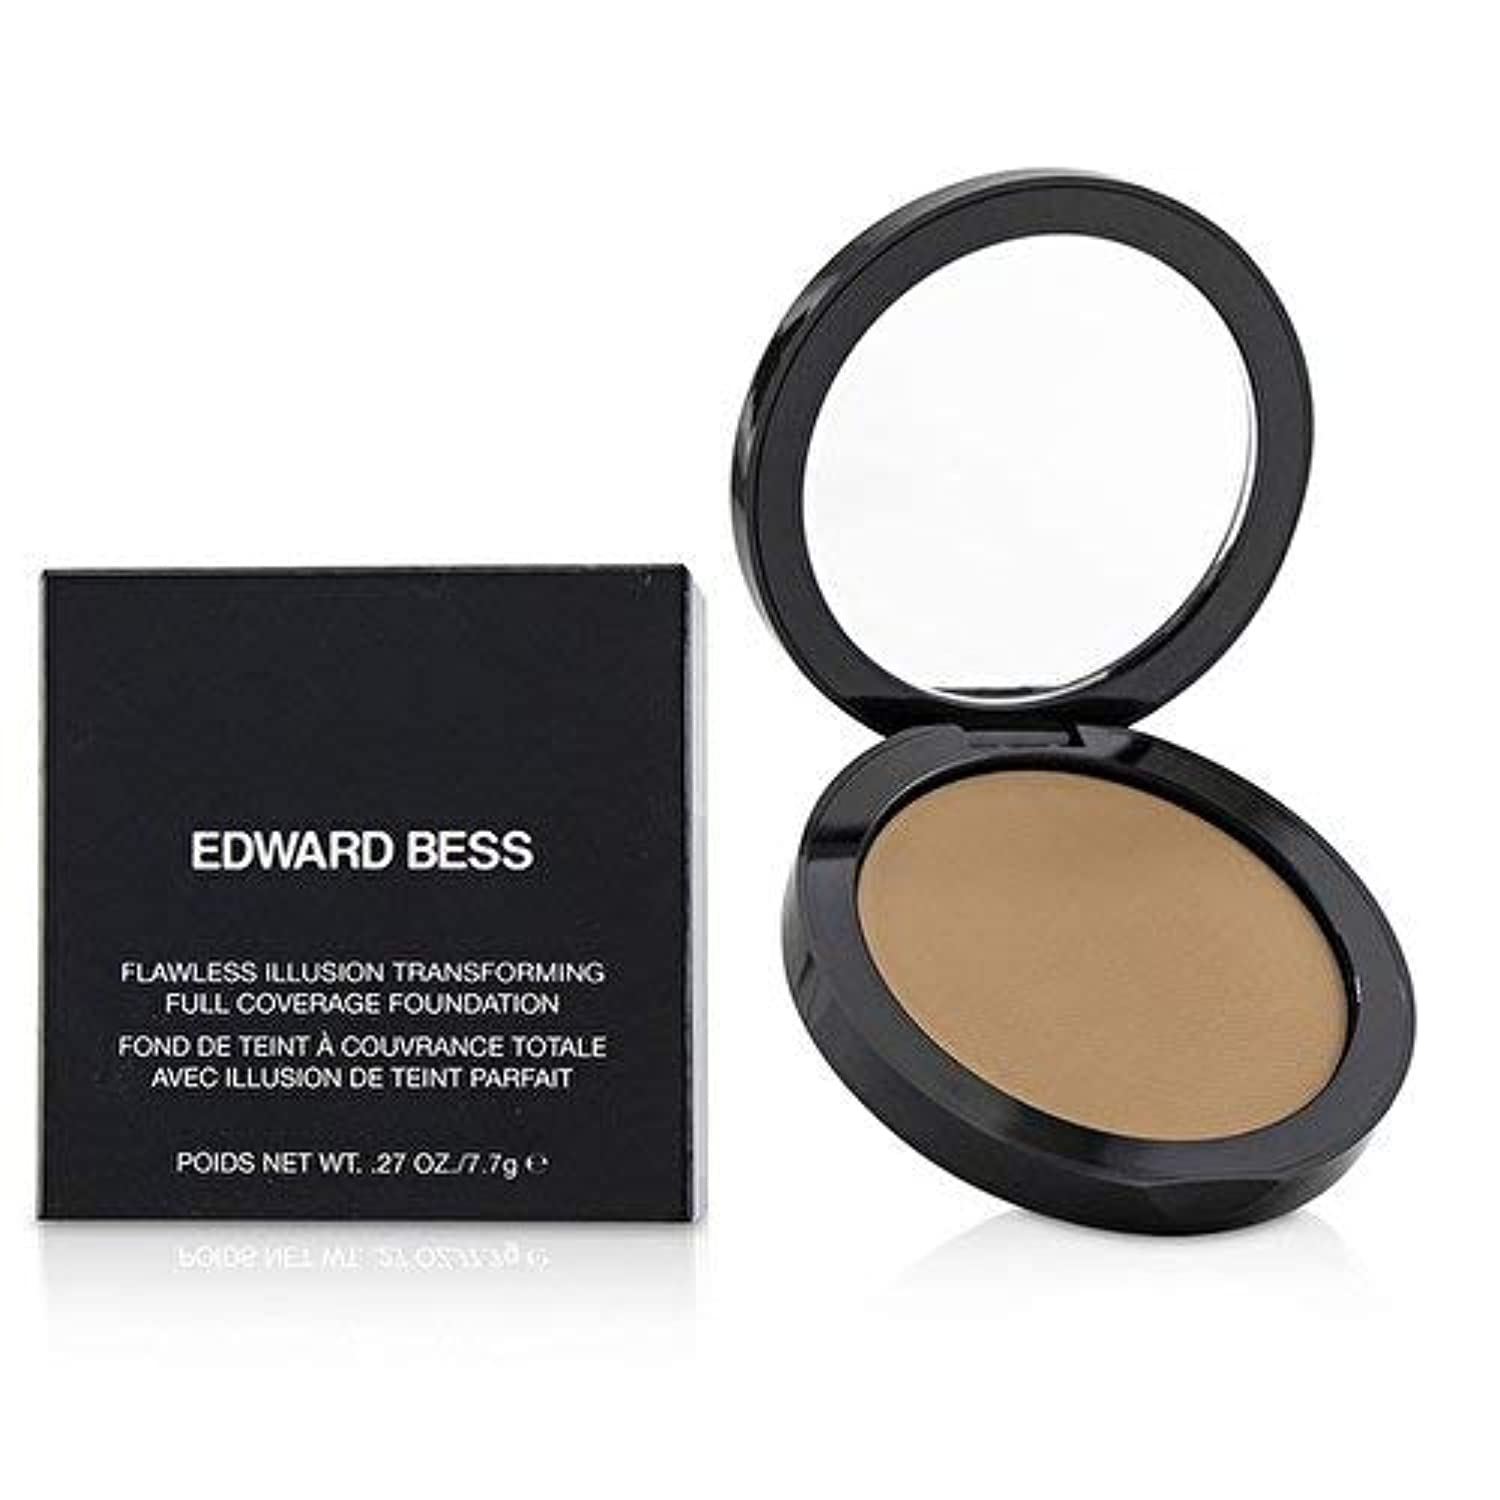 エドワードべス Flawless Illusion Transforming Full Coverage Foundation - # Tan 7.7g/0.27oz並行輸入品